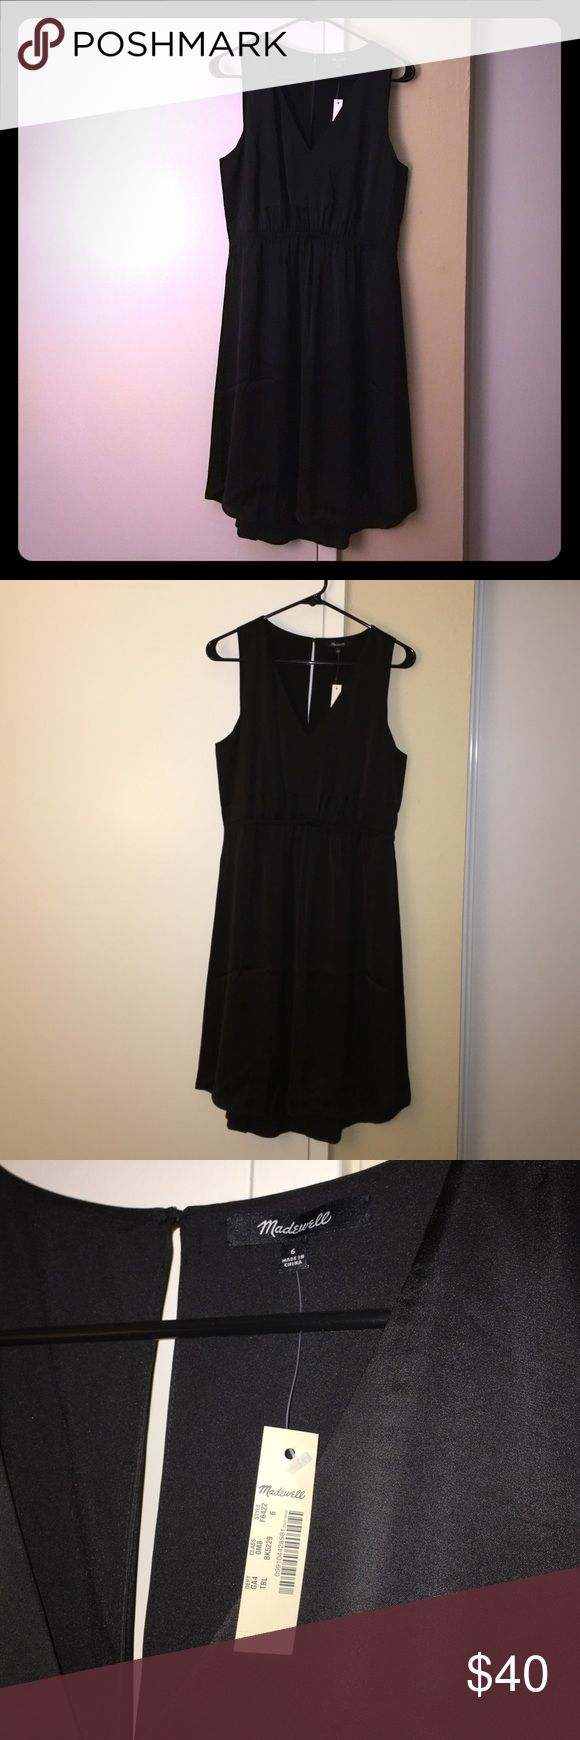 """Madewell Night Out Dress New with tags! A little black dress with a keyhole back. Waisted, falls 38"""" from highest point of bodice; lined, dry clean, import. Bought it at final sale price but turns out it doesn't quite fit me. My photos don't do it justice so I added screengrabs from the website. Madewell Dresses Midi"""